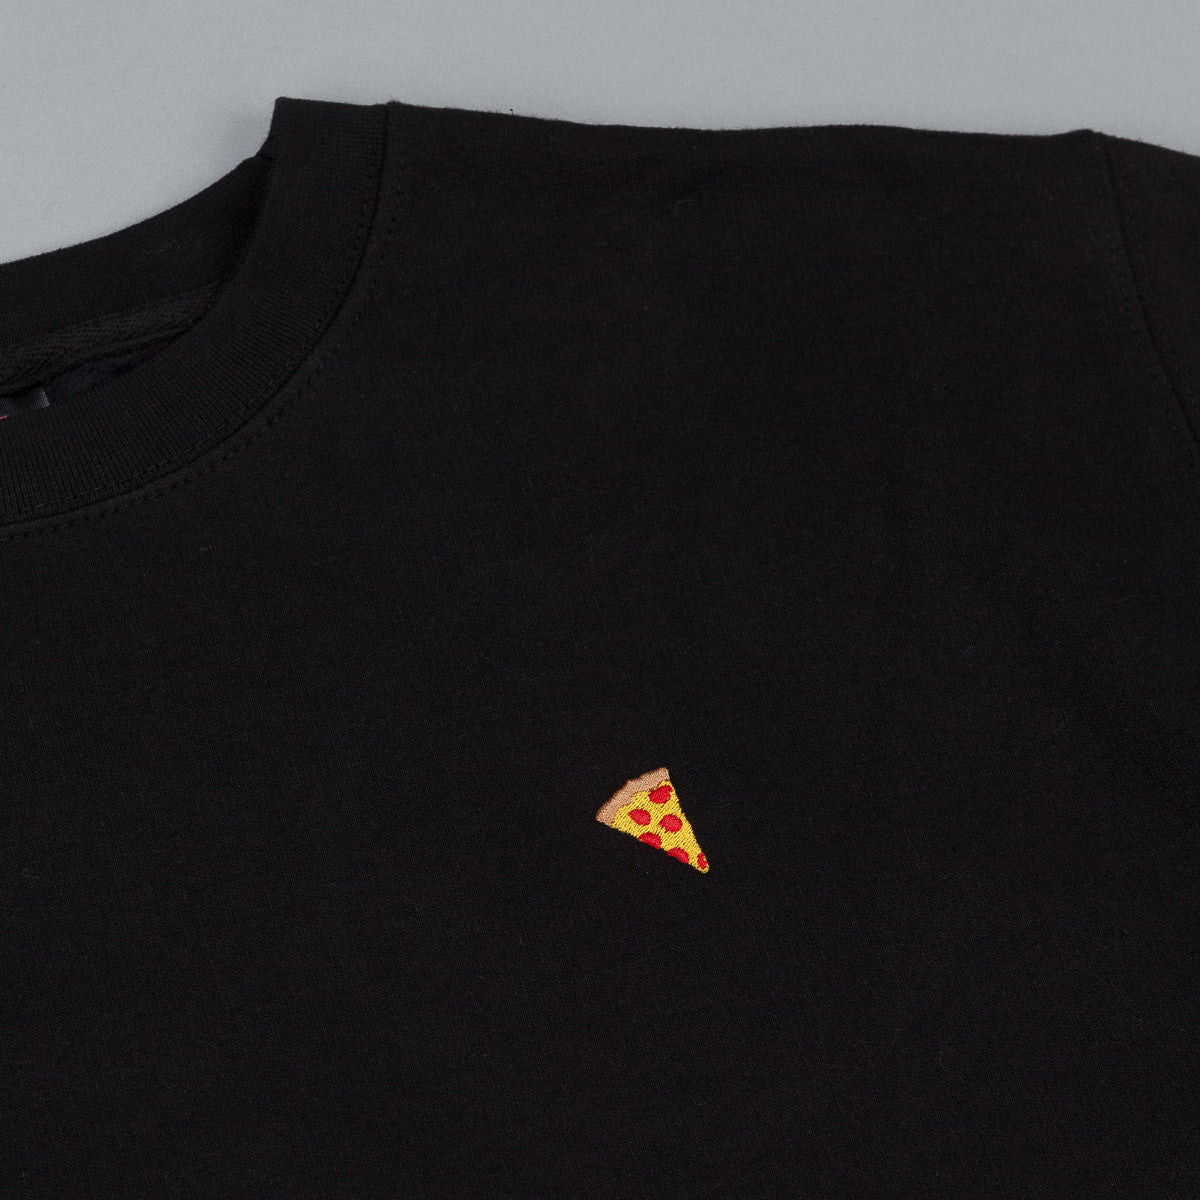 Pizza Skateboards Emoji Crew Neck Sweatshirt - Black